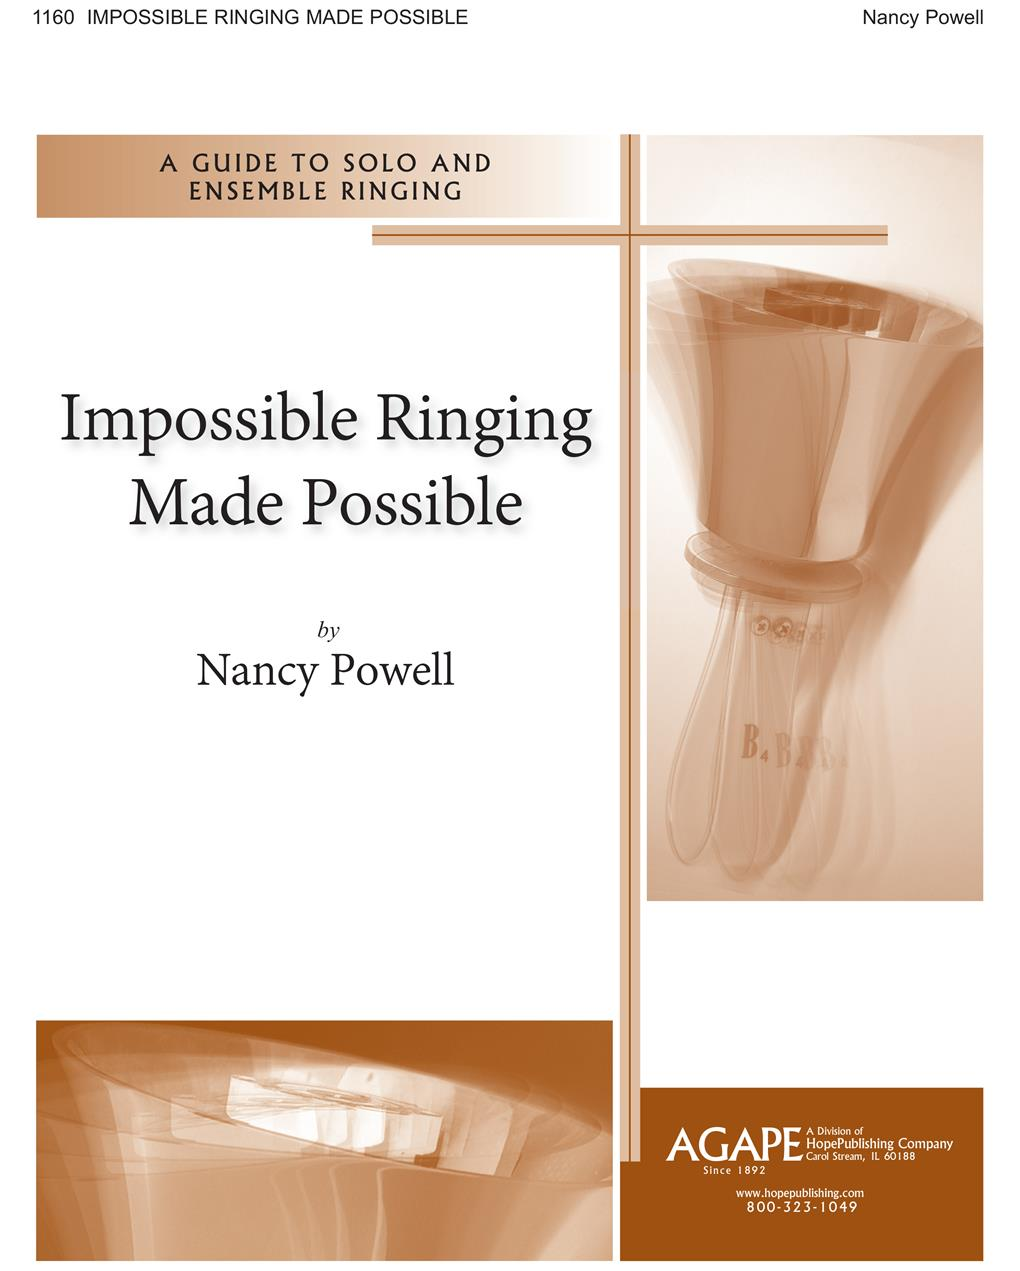 Impossible Ringing Made Possible Cover Image